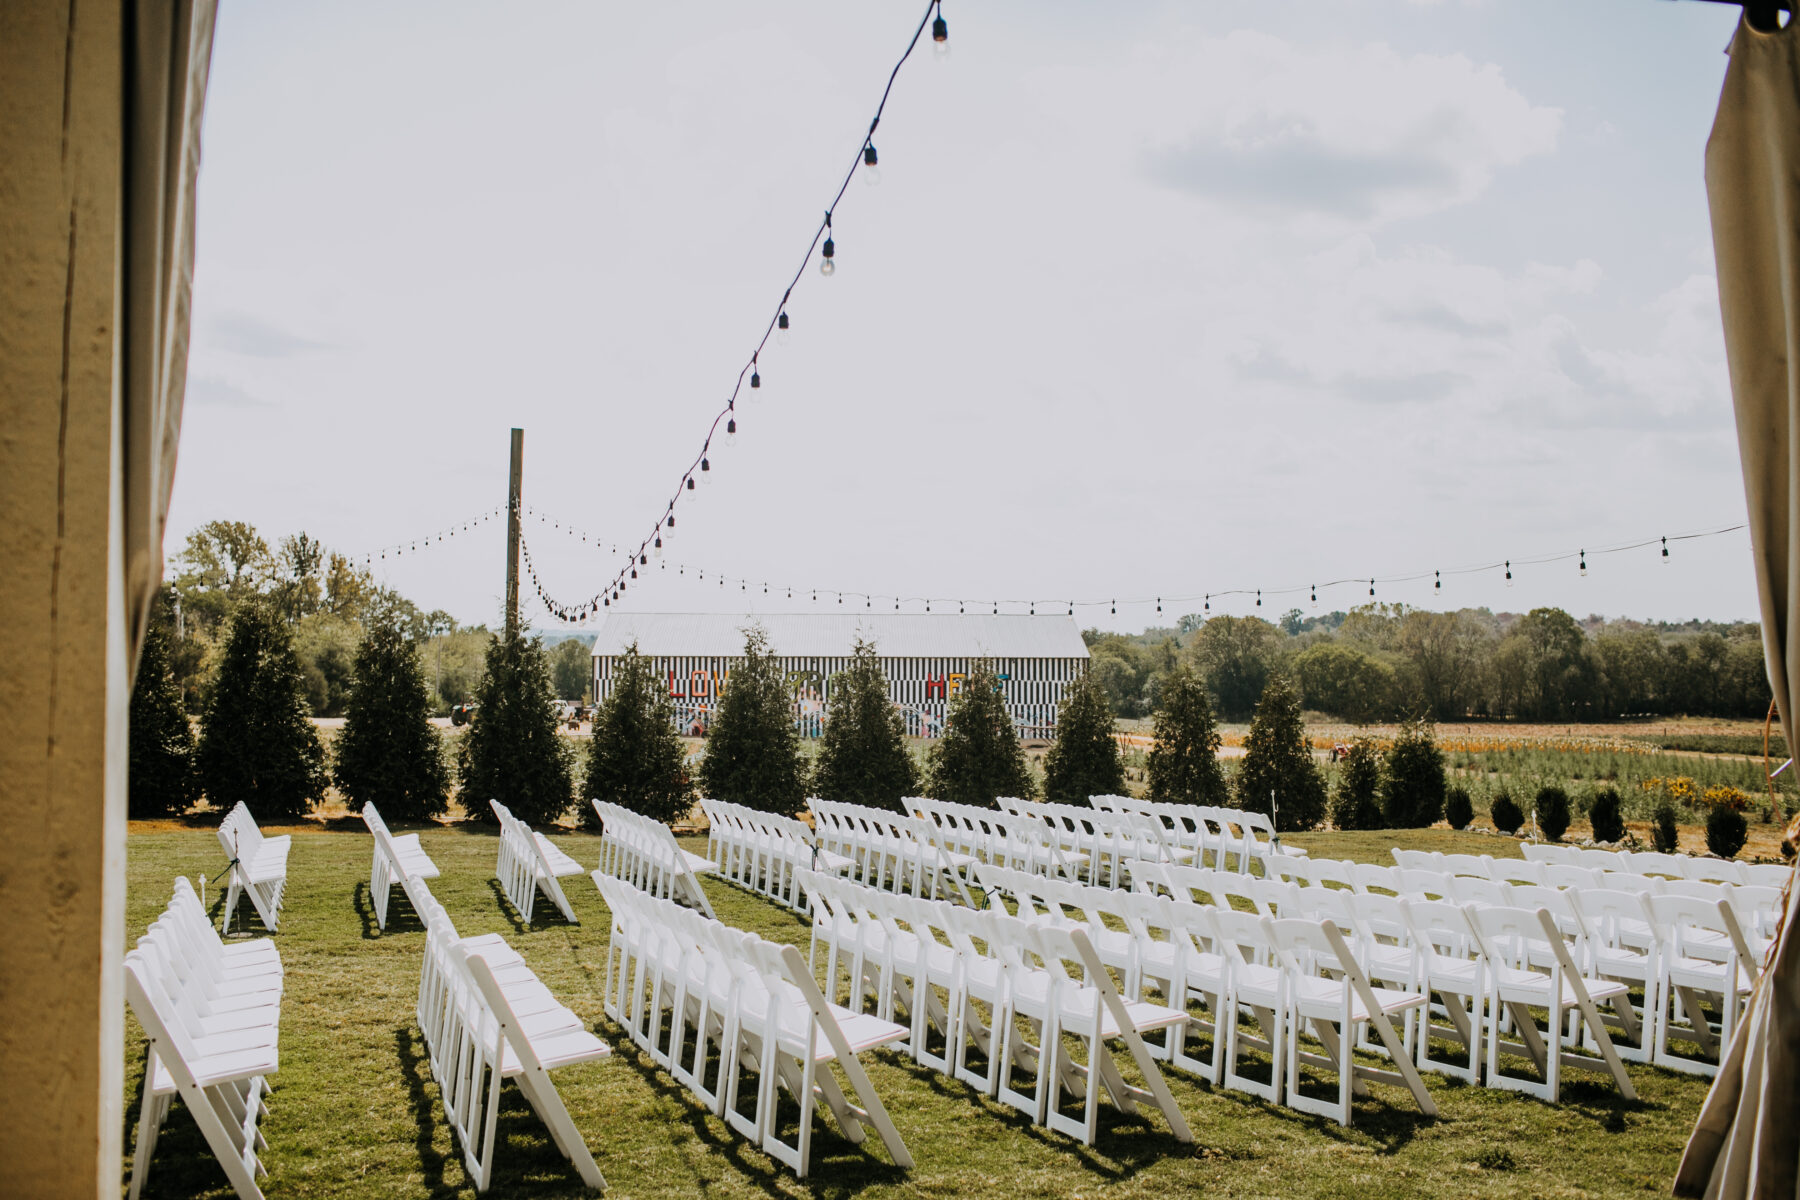 Outdoor wedding ceremony: Nashville Wedding with Beautiful Views by Teale Photography featured on Nashville Bride Guide